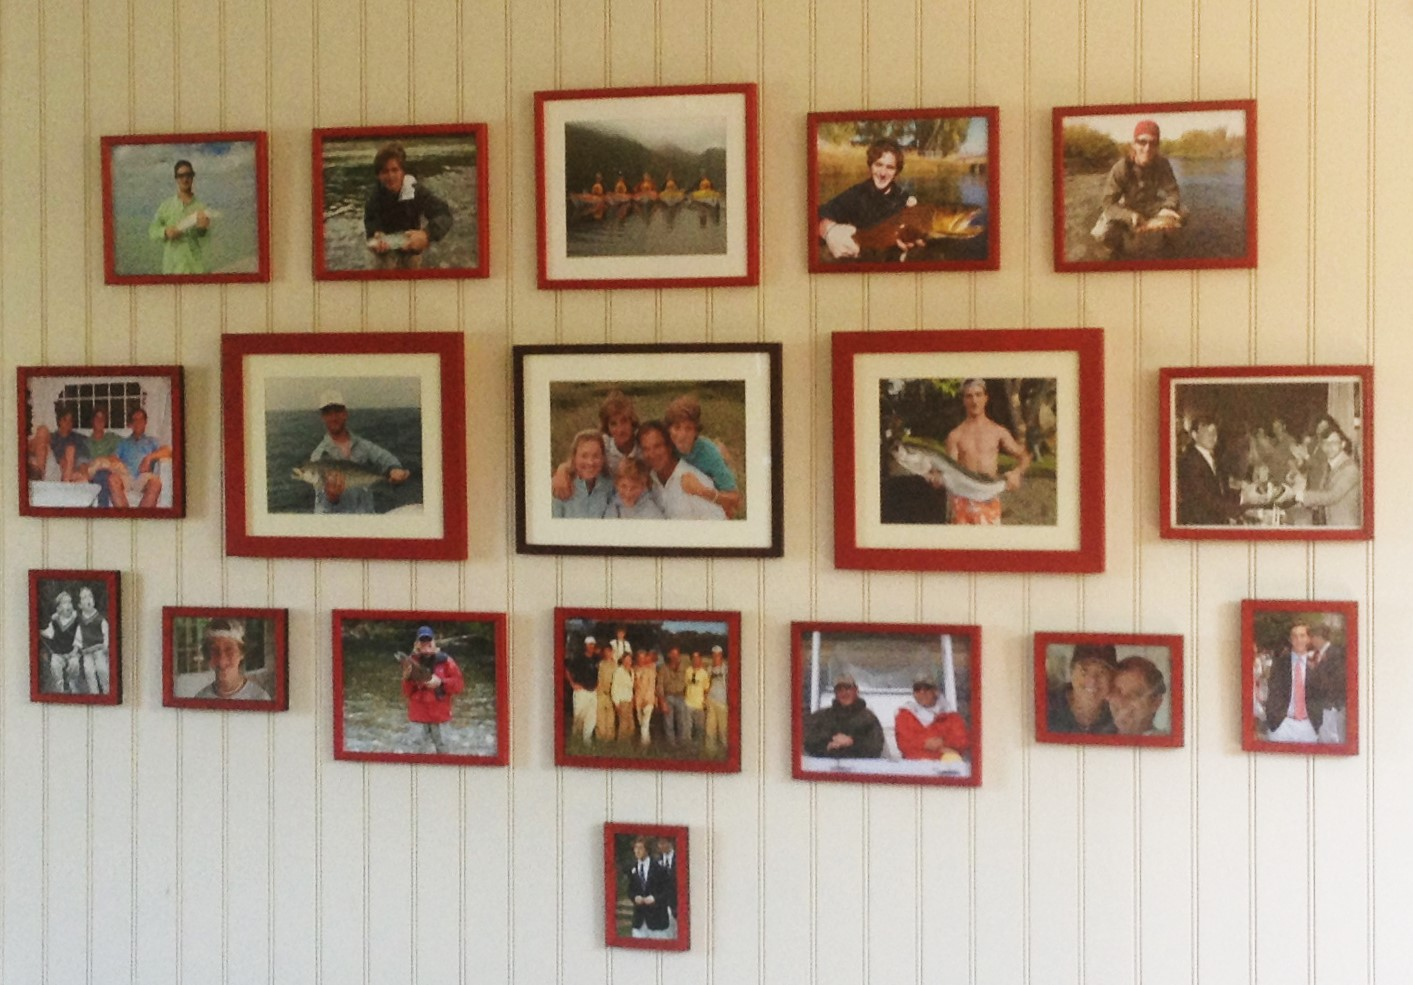 Family Photo Wall (detail)